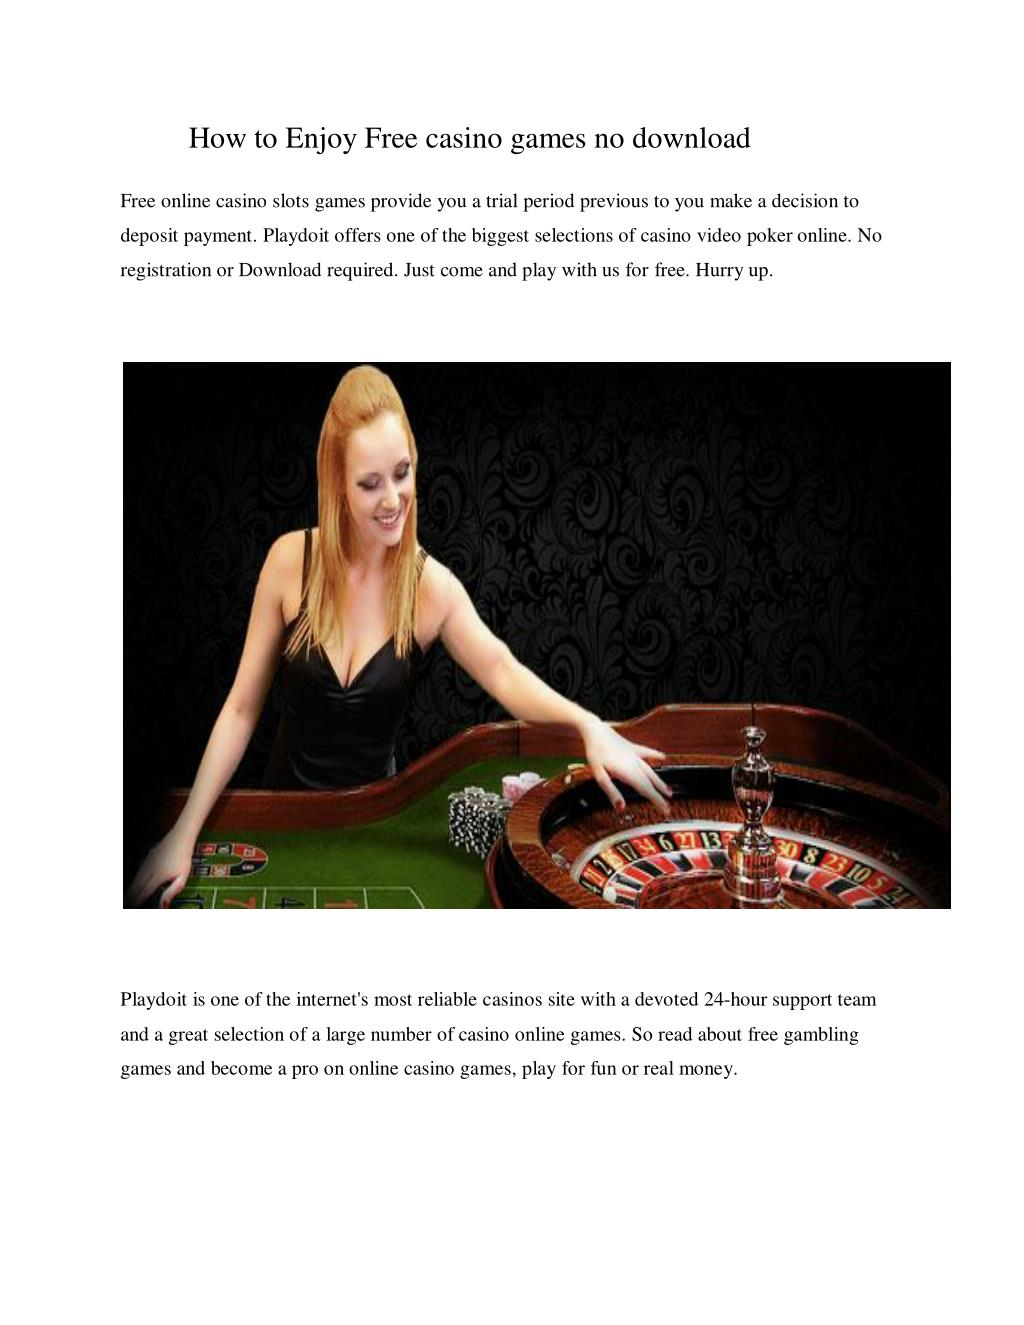 Ppt How To Enjoy Free Casino Games No Download Powerpoint